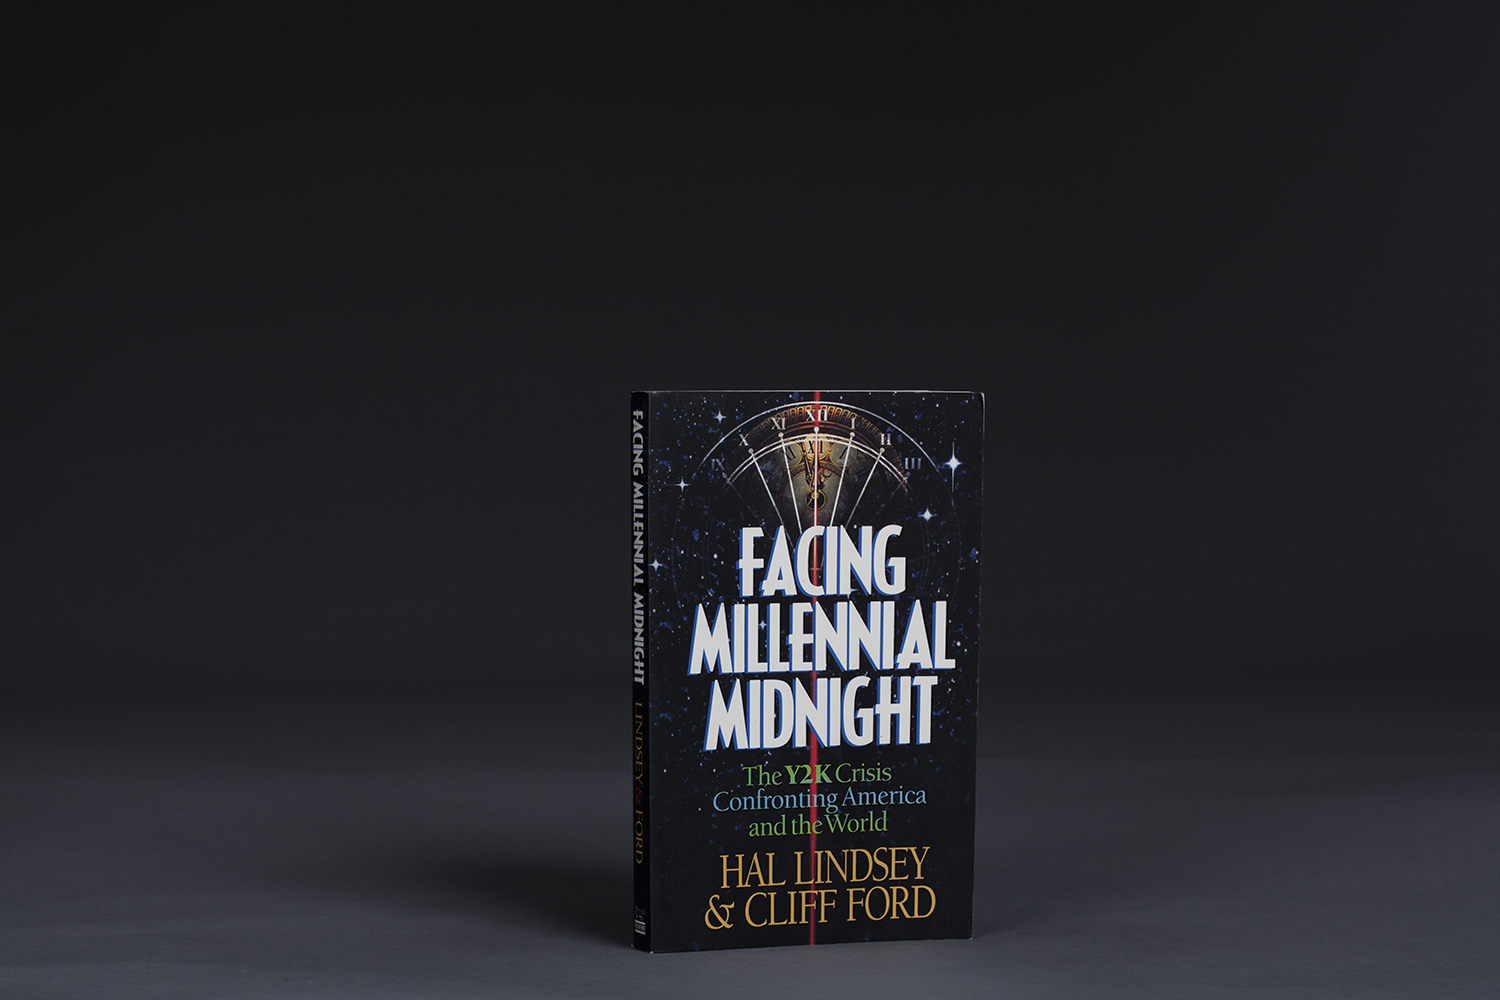 Facing Millennial Midnight - The Y2K Crisis Confronting America and the World - 0739 Cover.jpg